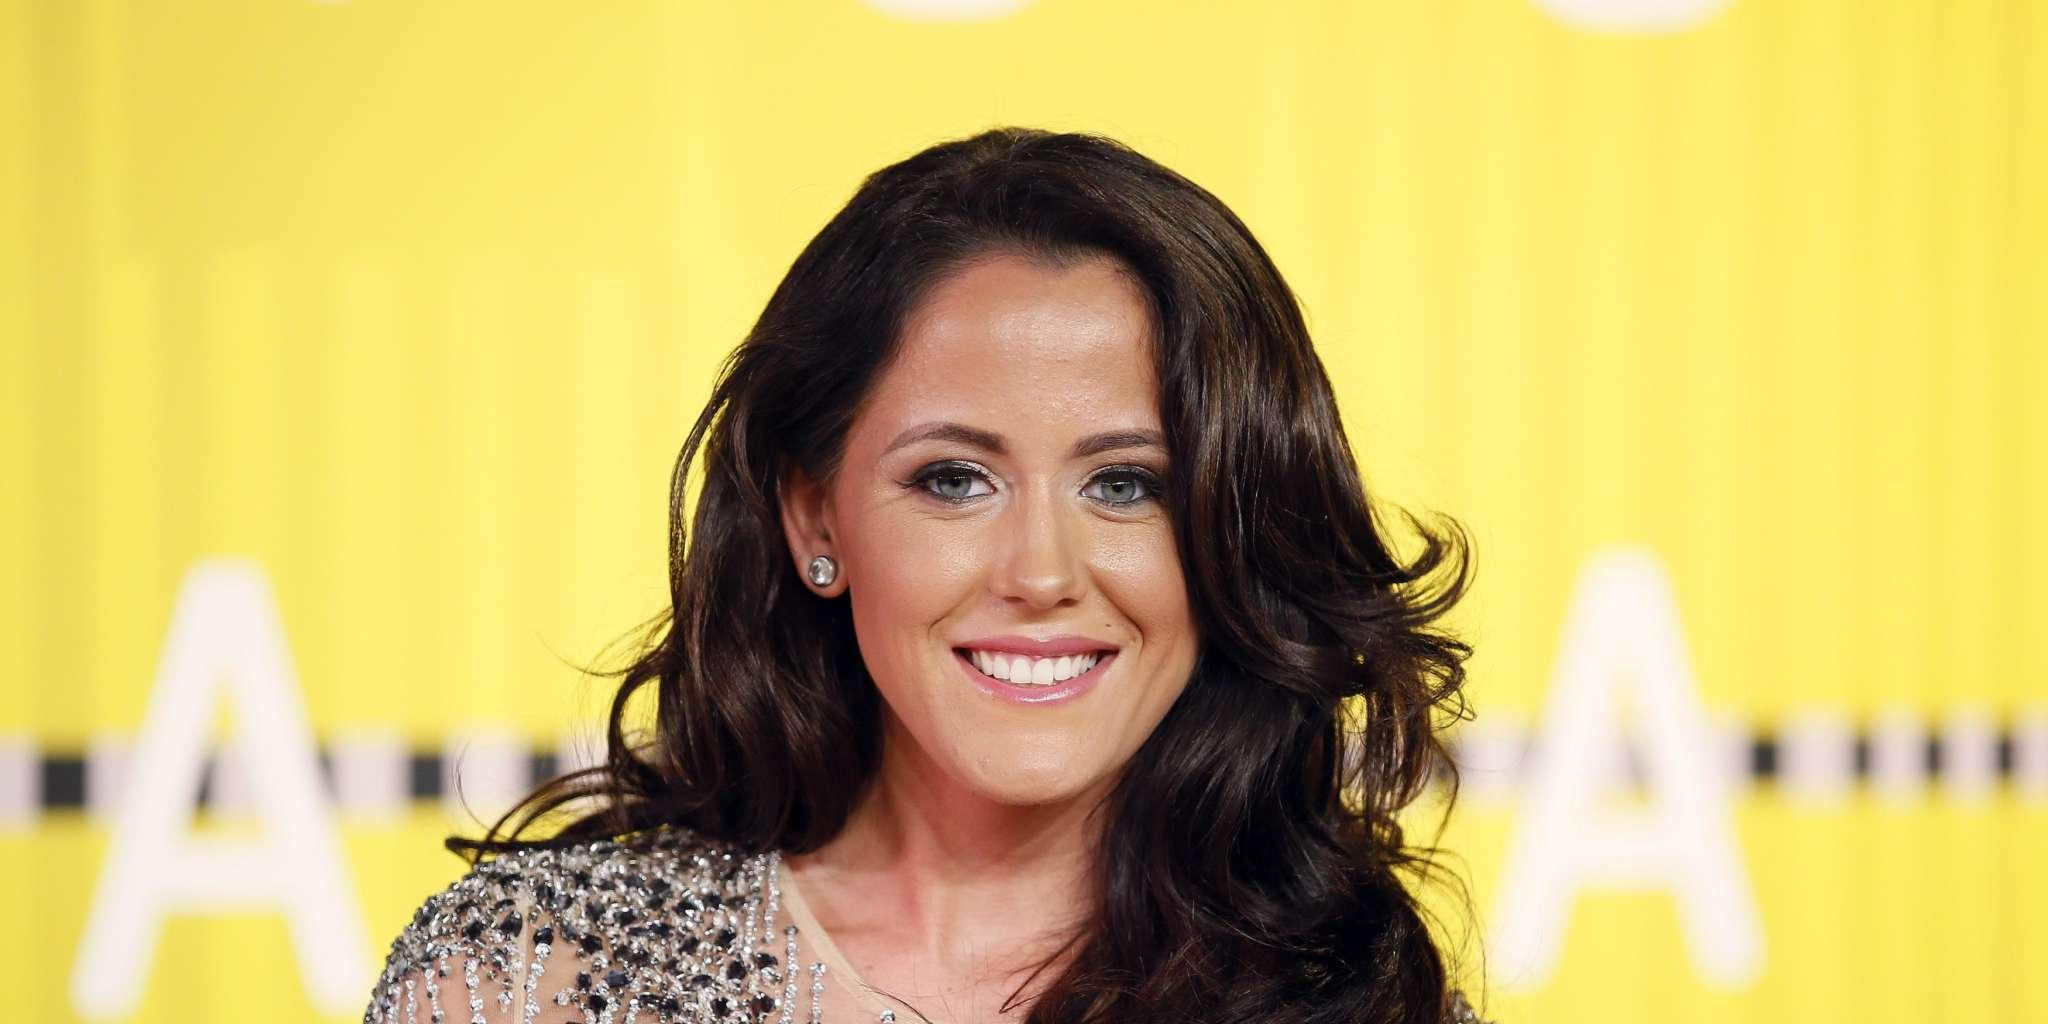 Jenelle Evans Hates That Her Kids Are So Happy Away From Her - Misses Them 'Terribly!'